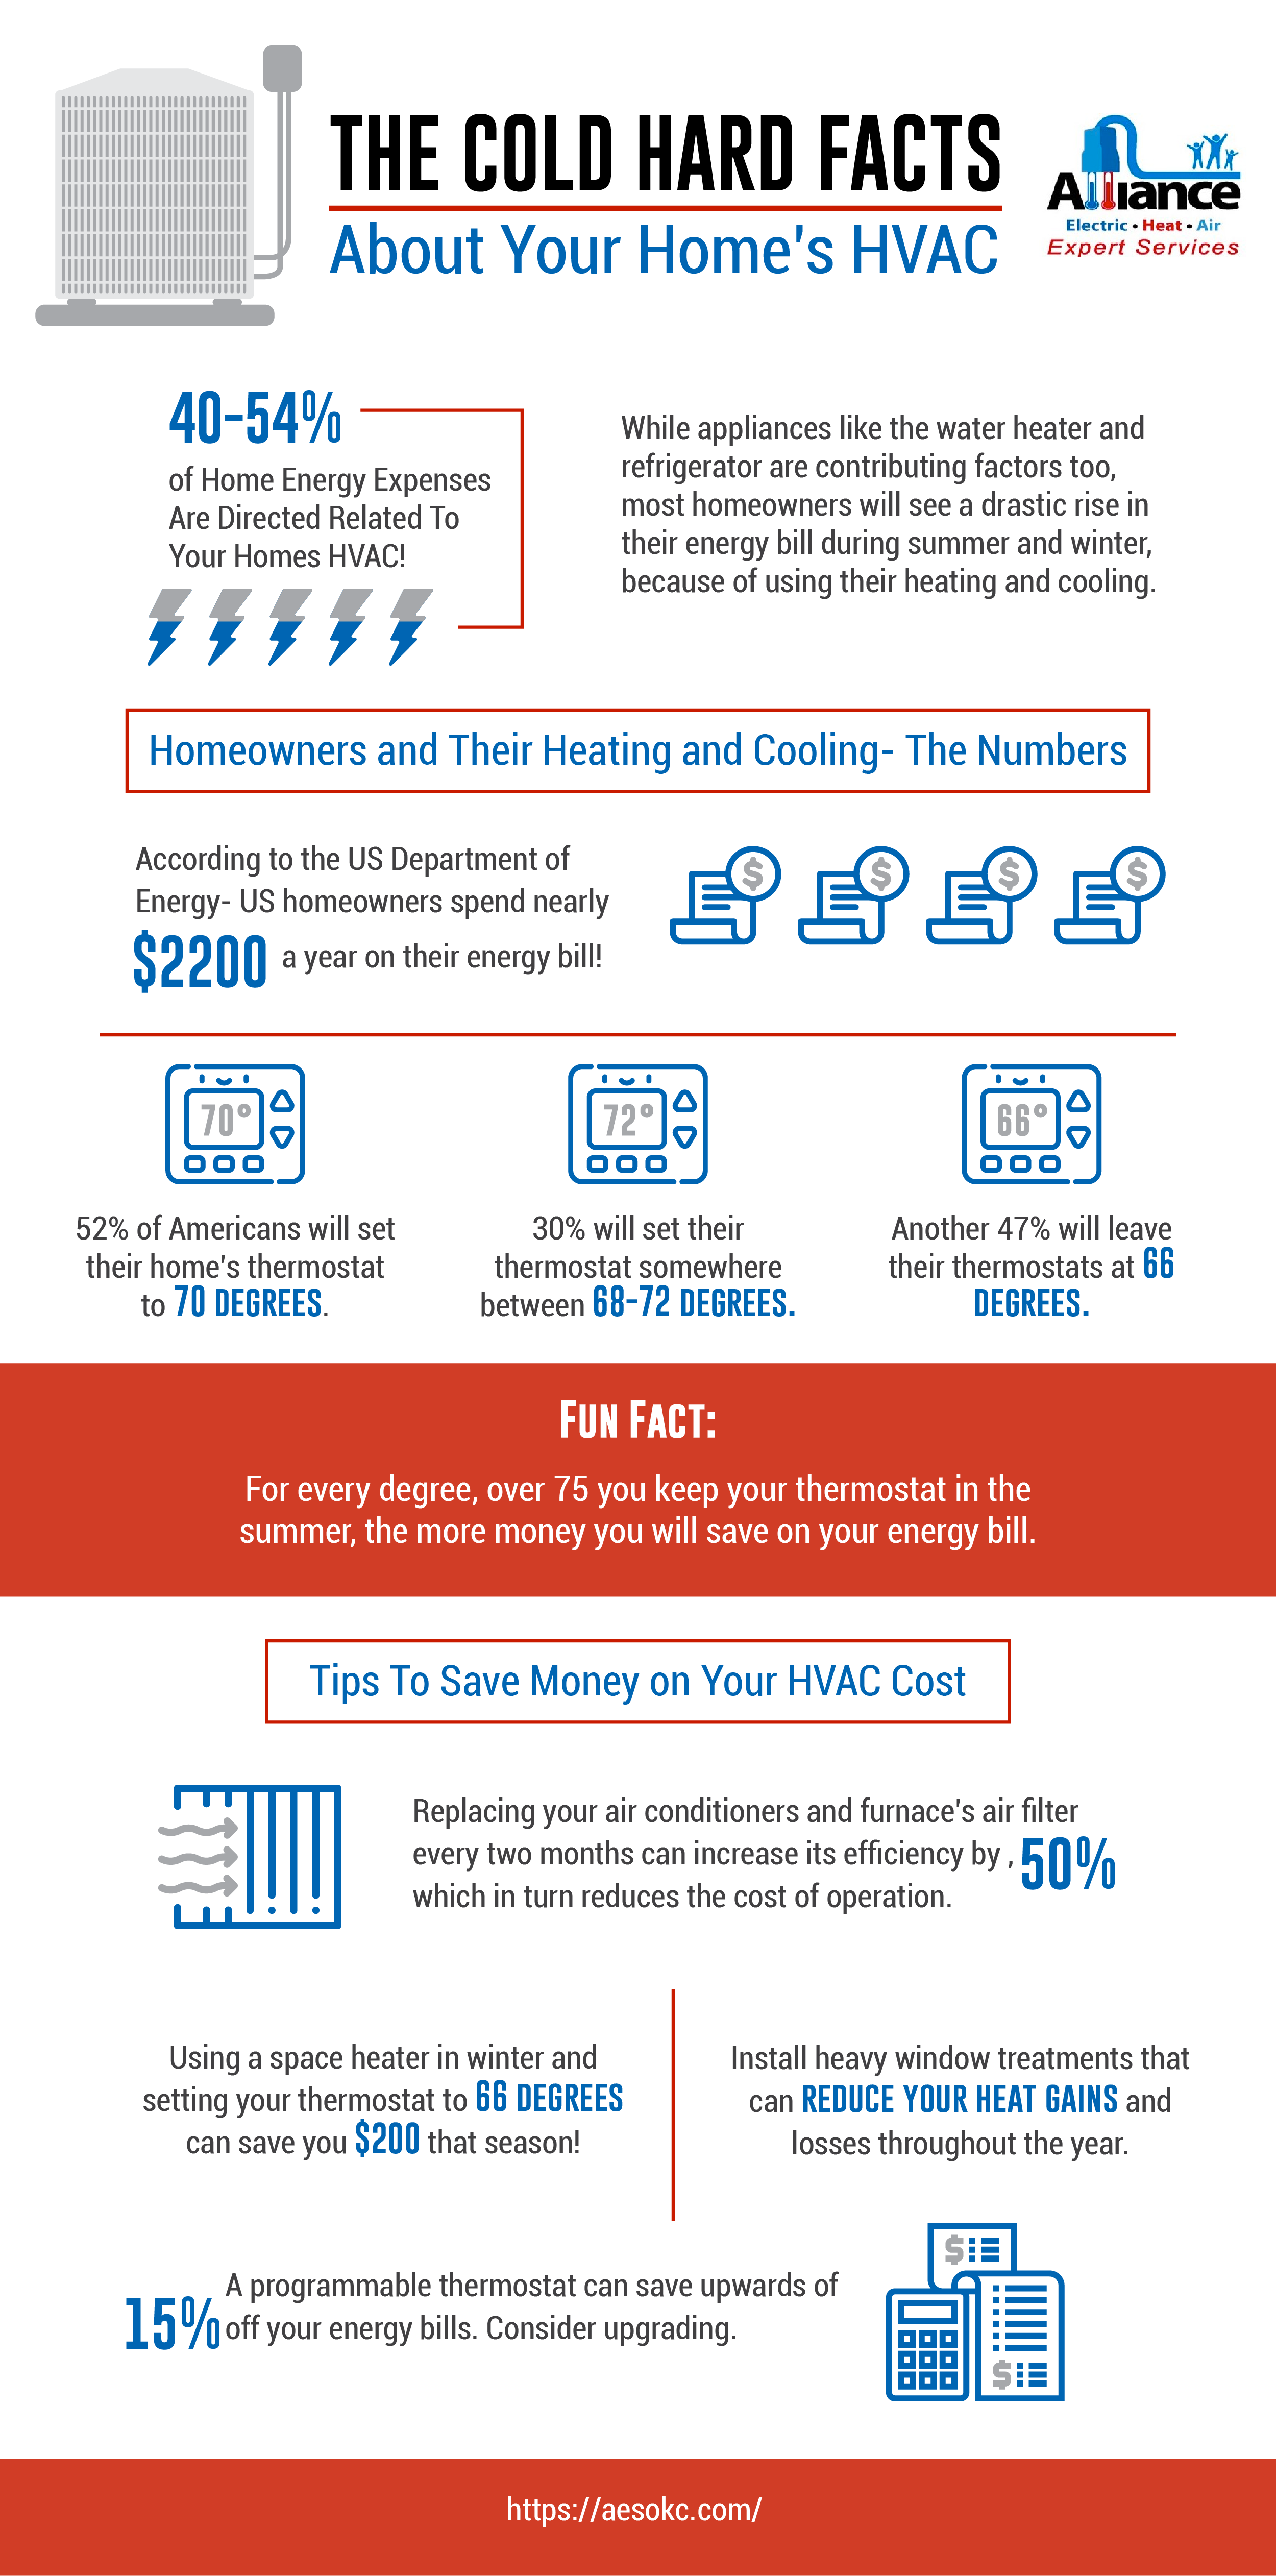 The Cold Hard Facts About Your Home's HVAC